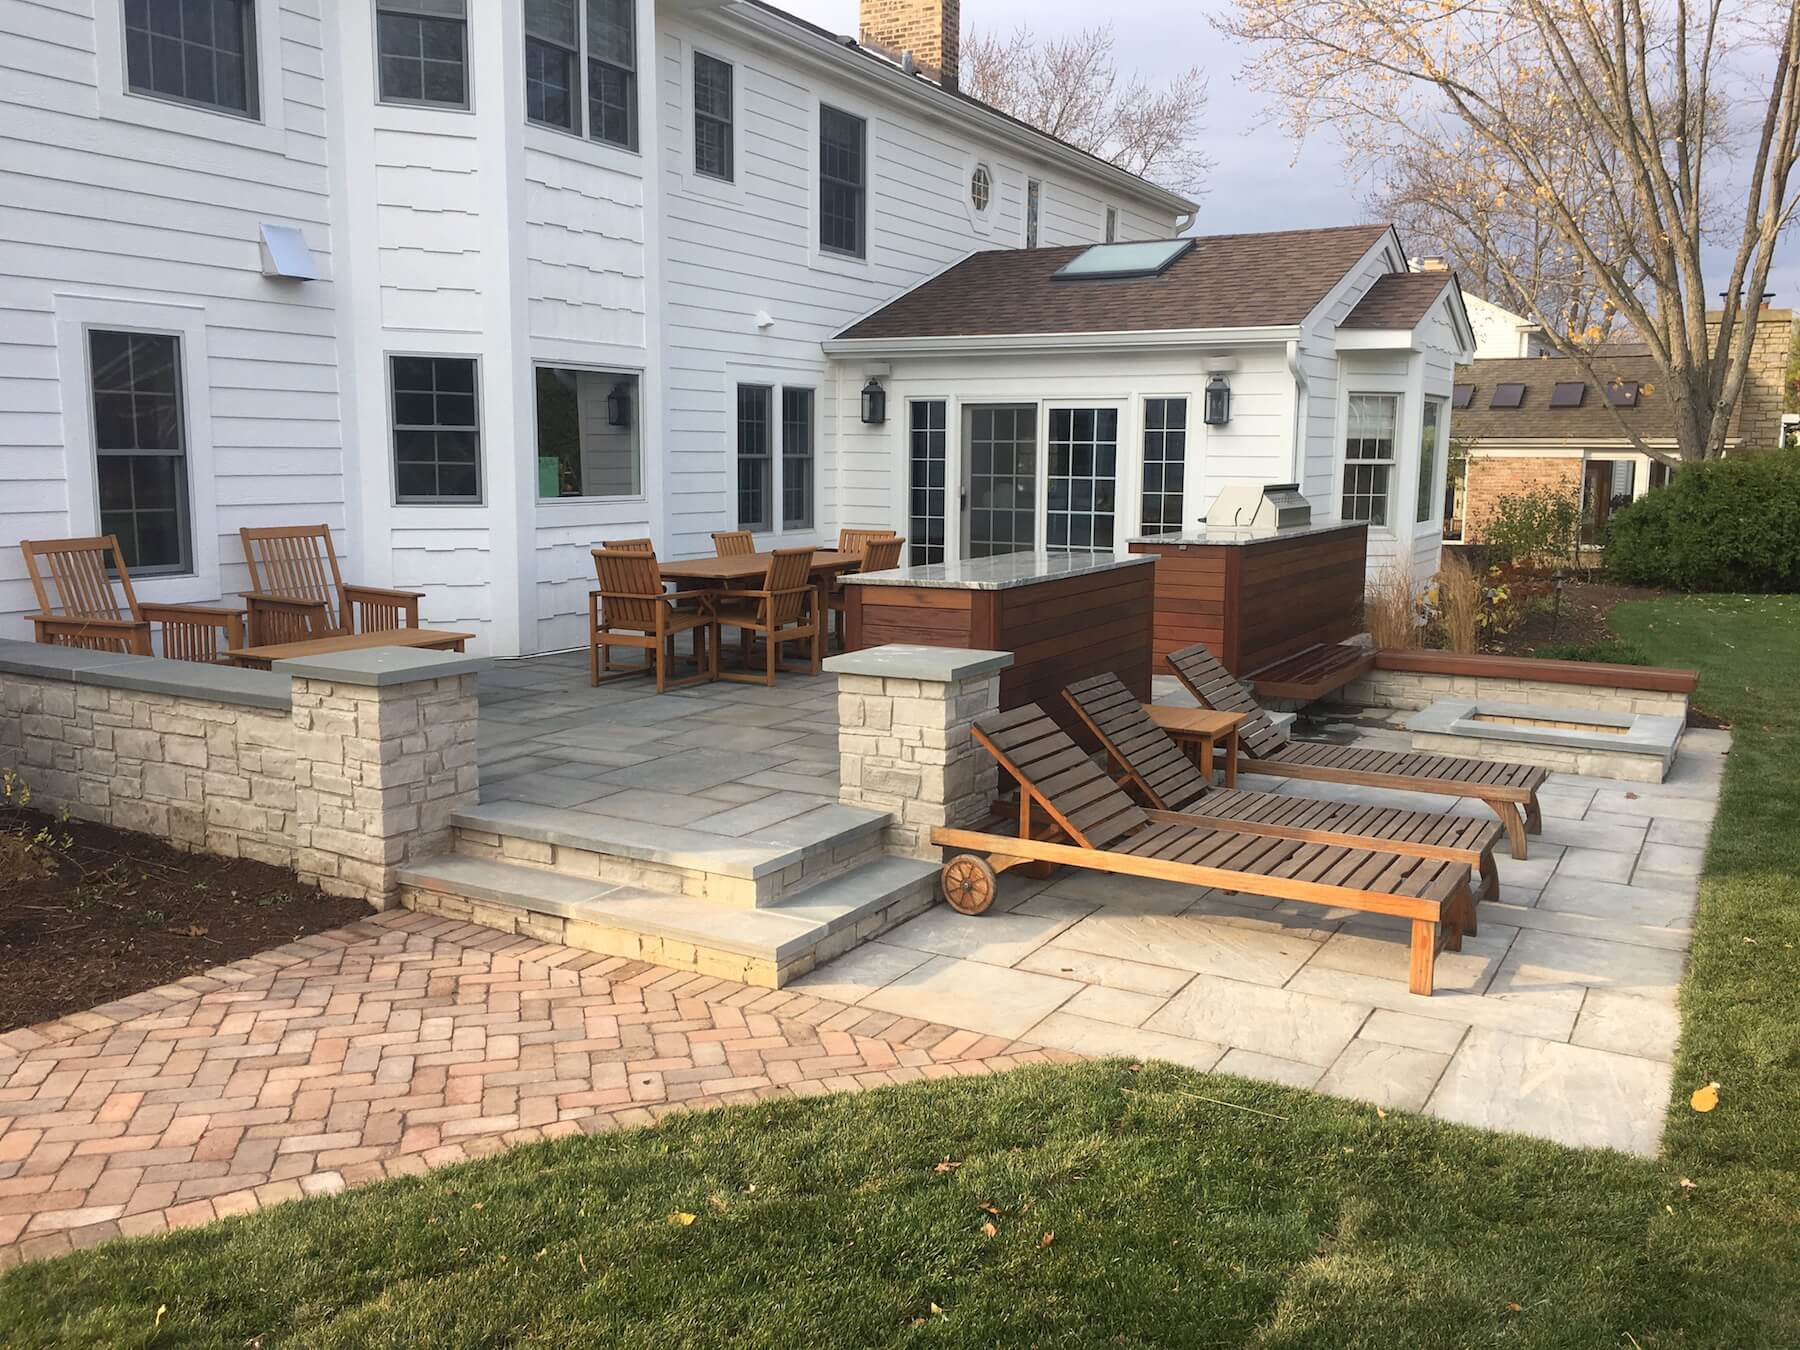 Stone Paver Patio - Denver - Roof Decks, Pergolas, and ... on Small Backyard Brick Patio Ideas id=33145